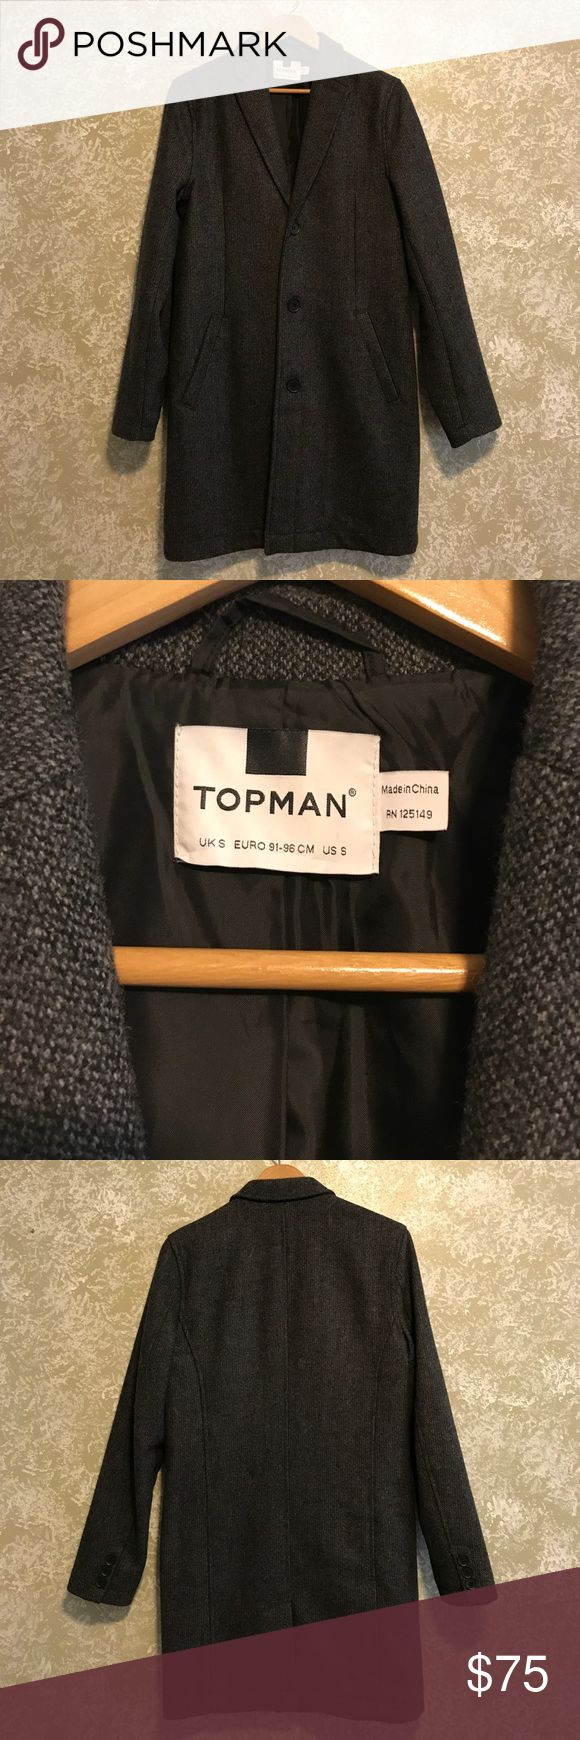 Topman Overcoat Topman overcoat in charcoal color way; purchased at Nordstrom last year and used once or twice. In pristine condition, tons of life left. Topman Jackets & Coats